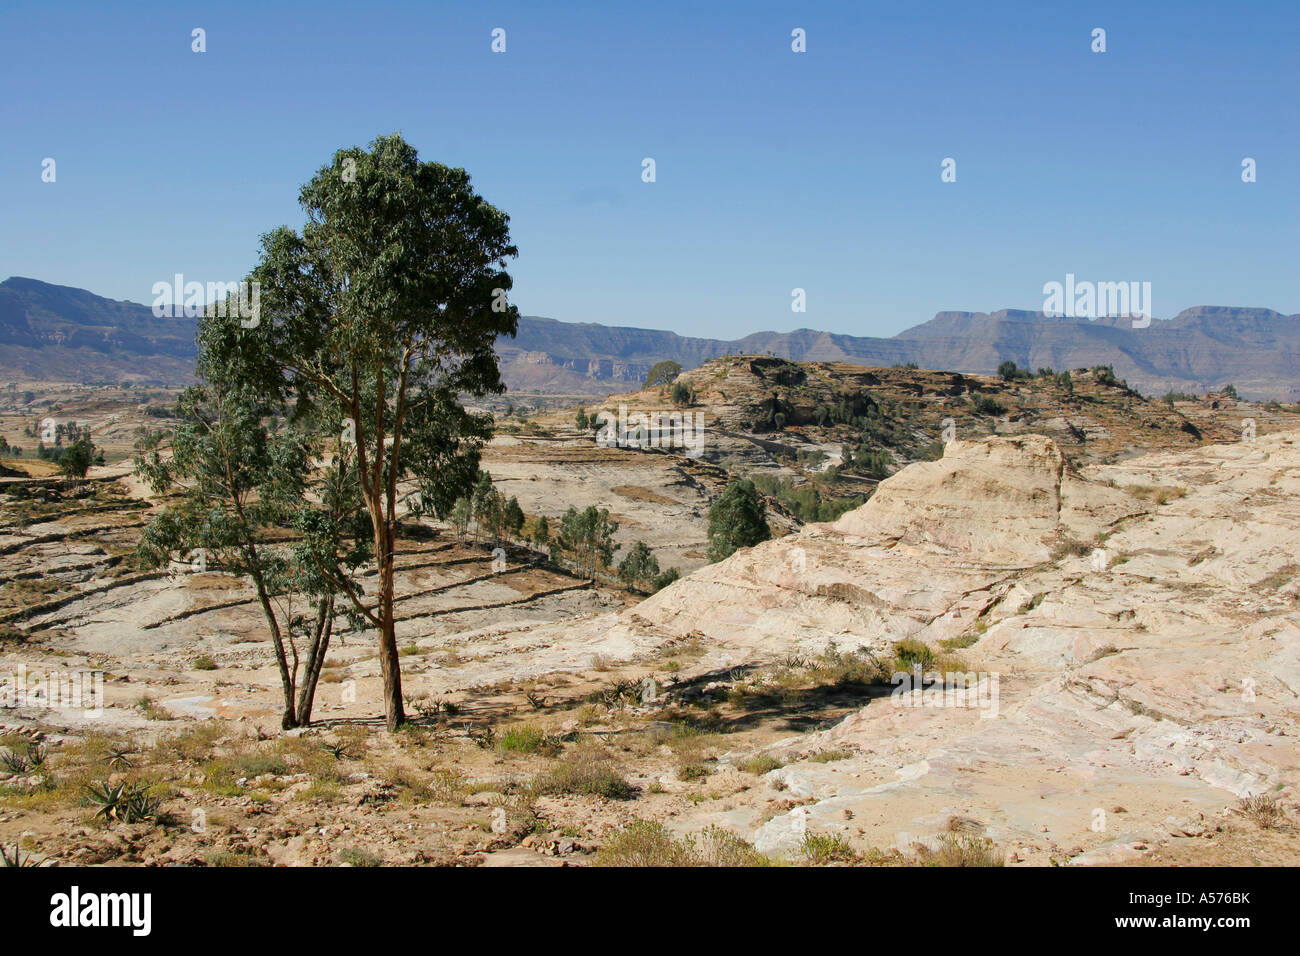 Painet jb1299 ethiopia landscape adigrat africa country developing nation less economically developed culture emerging - Stock Image